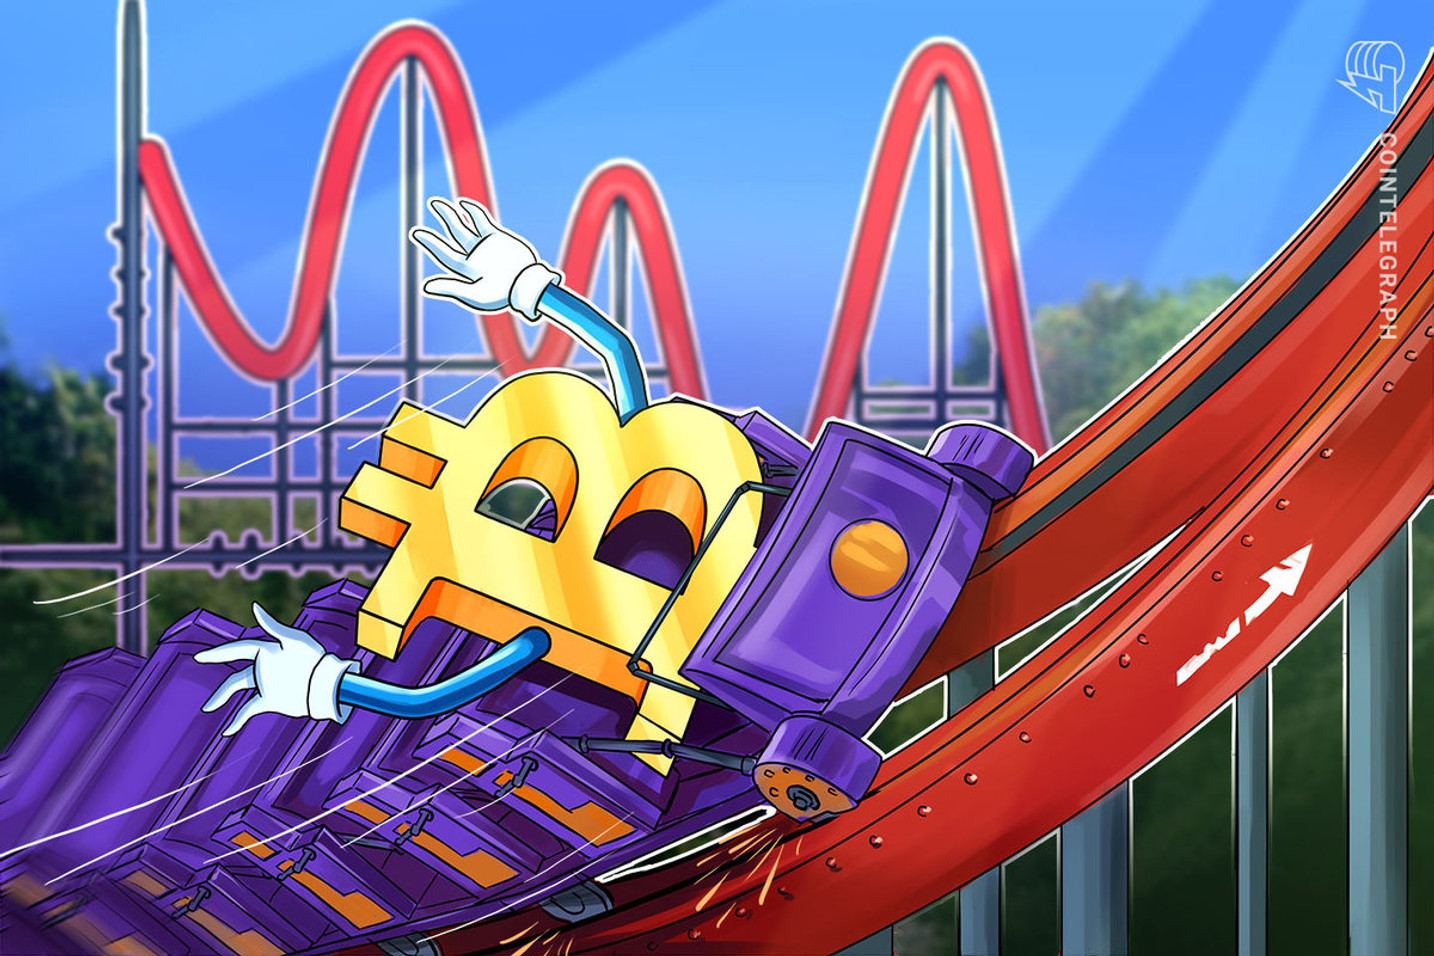 Bitcoin Price Diary: How Everything Went 100% Right With My $7.3K Long